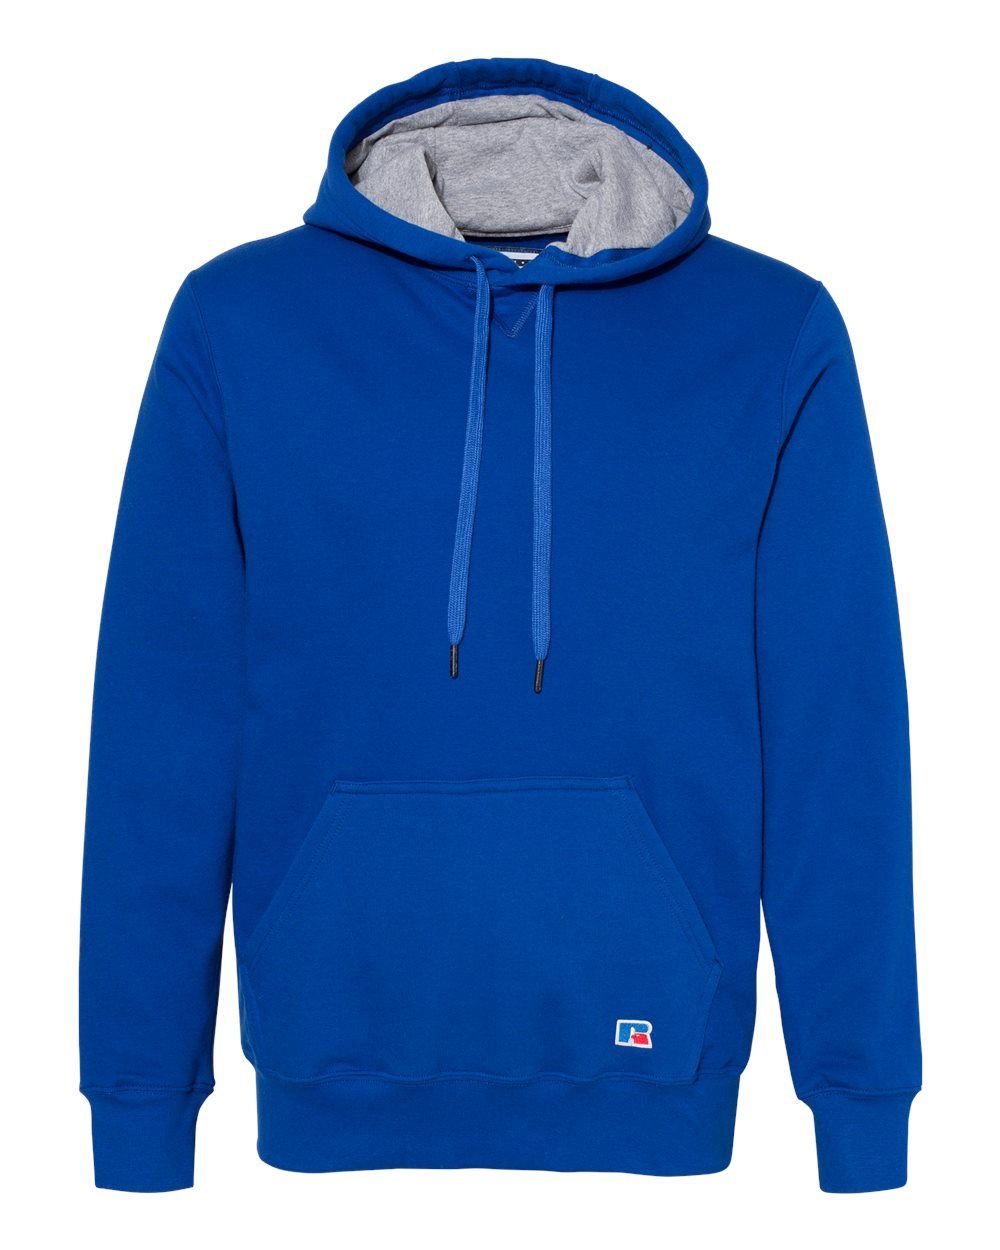 Russell-Athletic-Mens-Cotton-Rich-Fleece-Hooded-Sweatshirt-82ONSM-up-to-3XL miniature 21